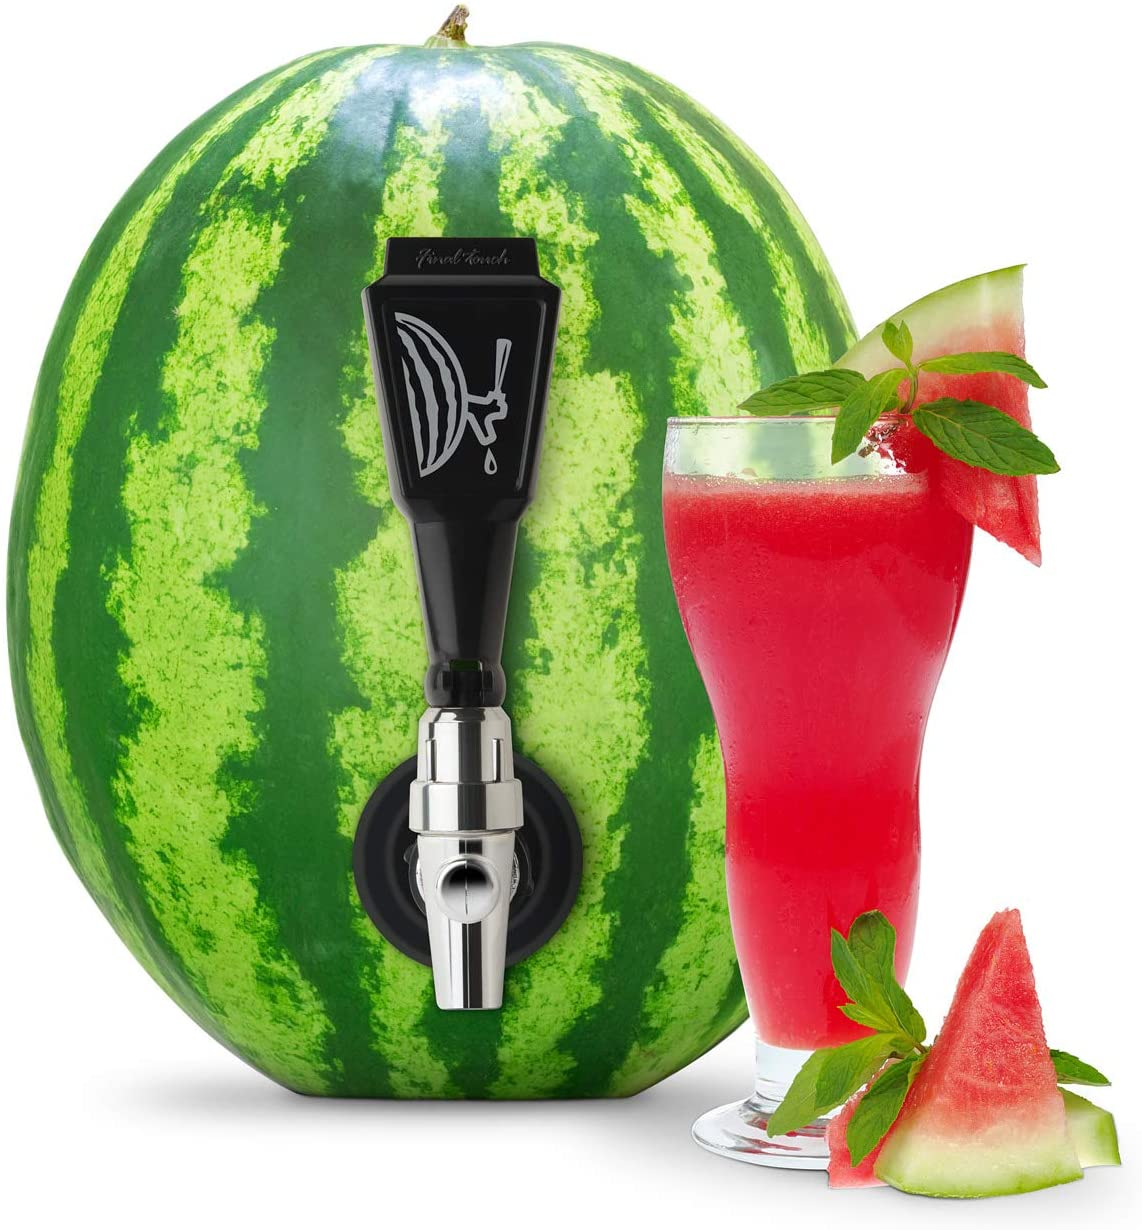 Watermelon with a keg tap in it and a glass of juice